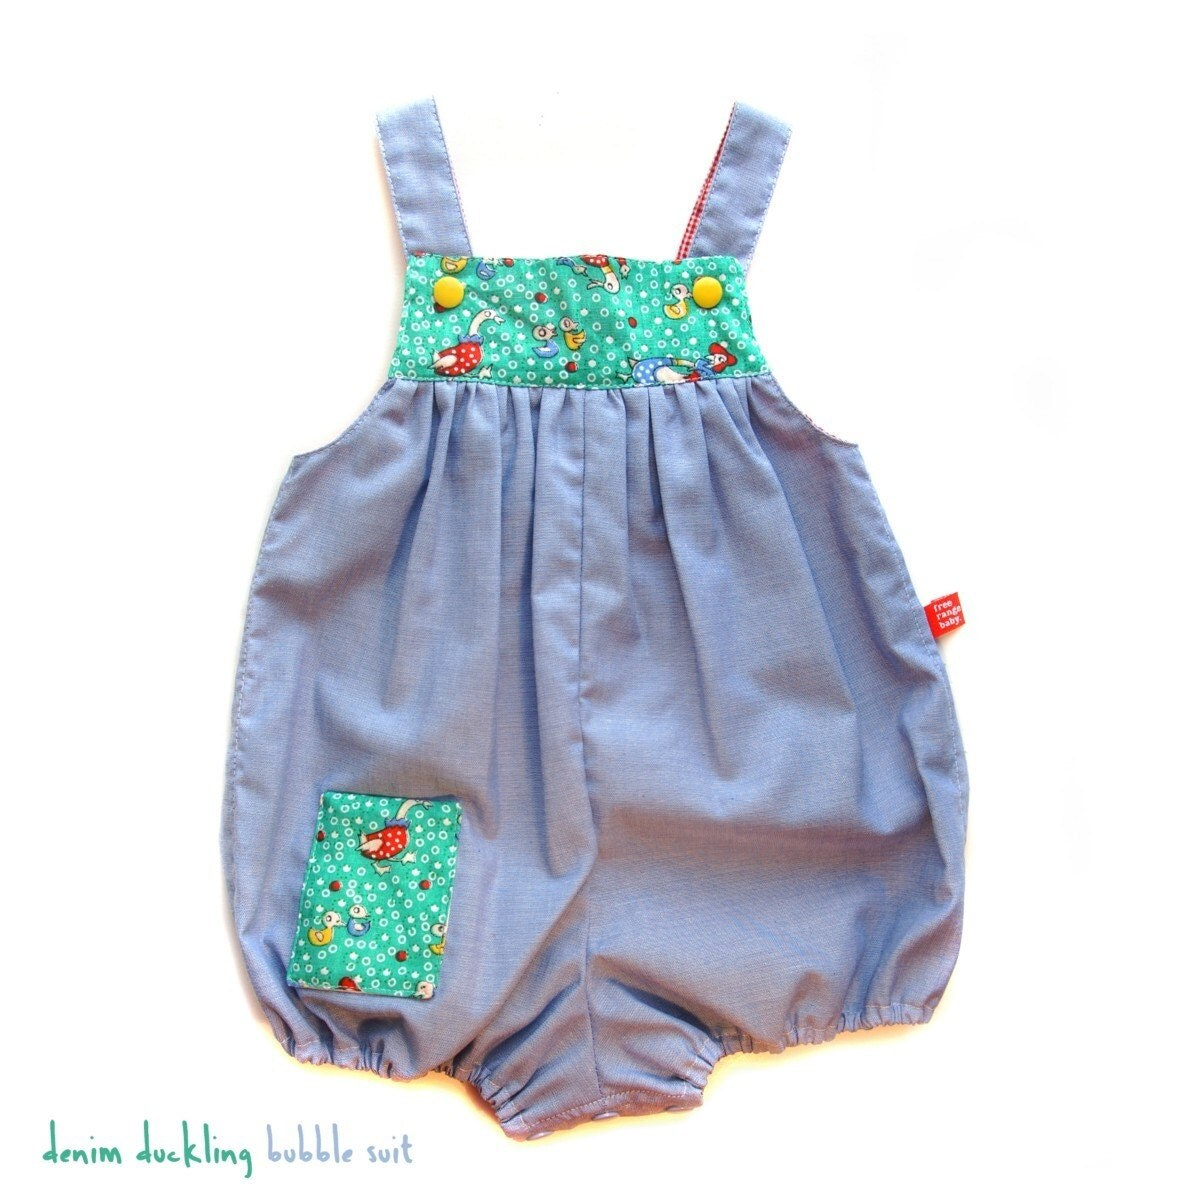 SPRING SALE - Duckling denim bubble  for baby - 3 to 6months